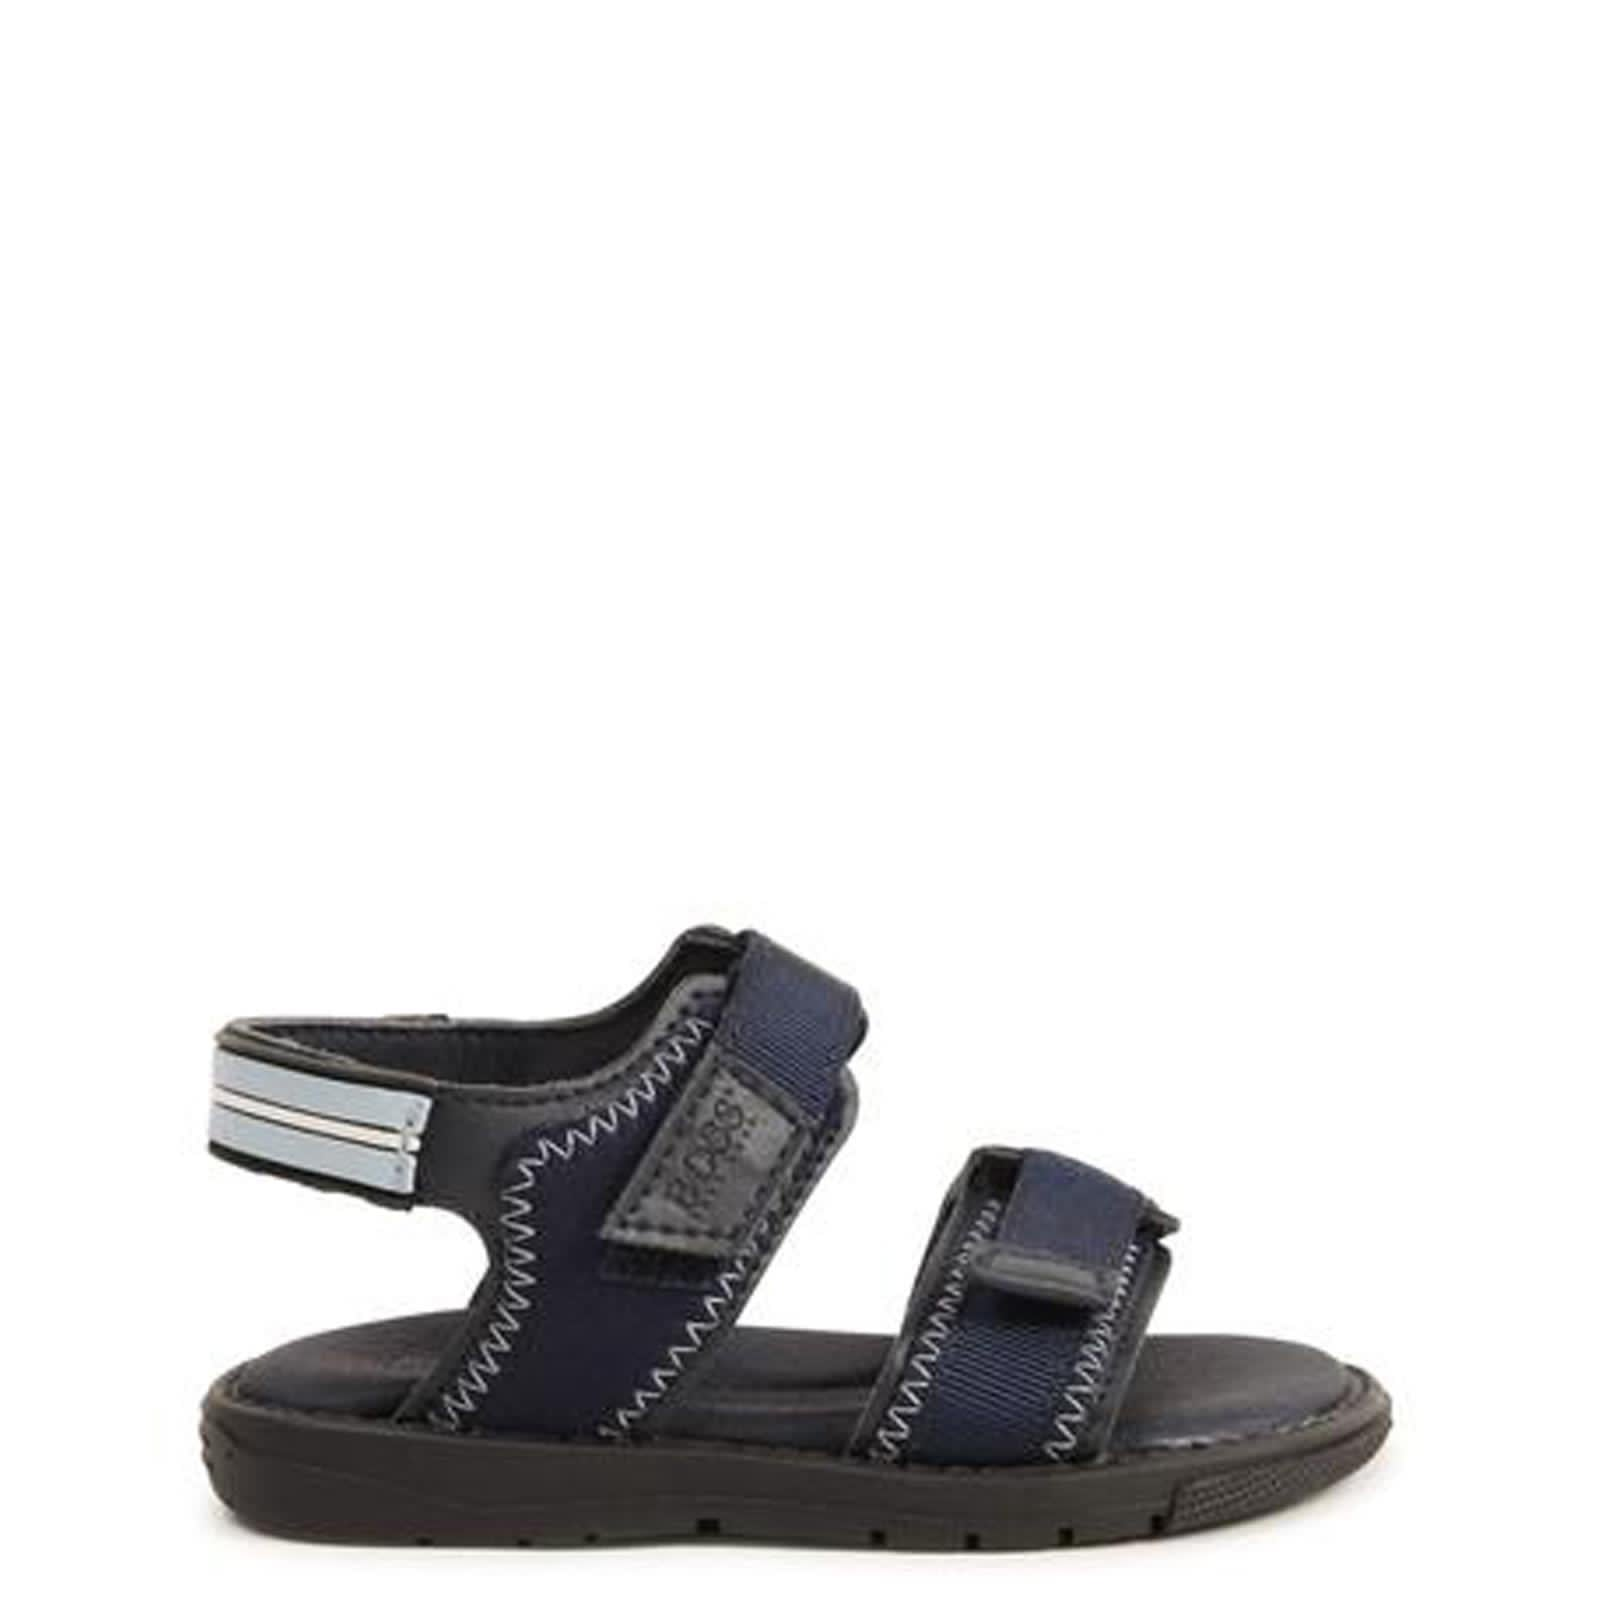 Hugo Boss Royal Blue Sandal-Tassel Children Shoes